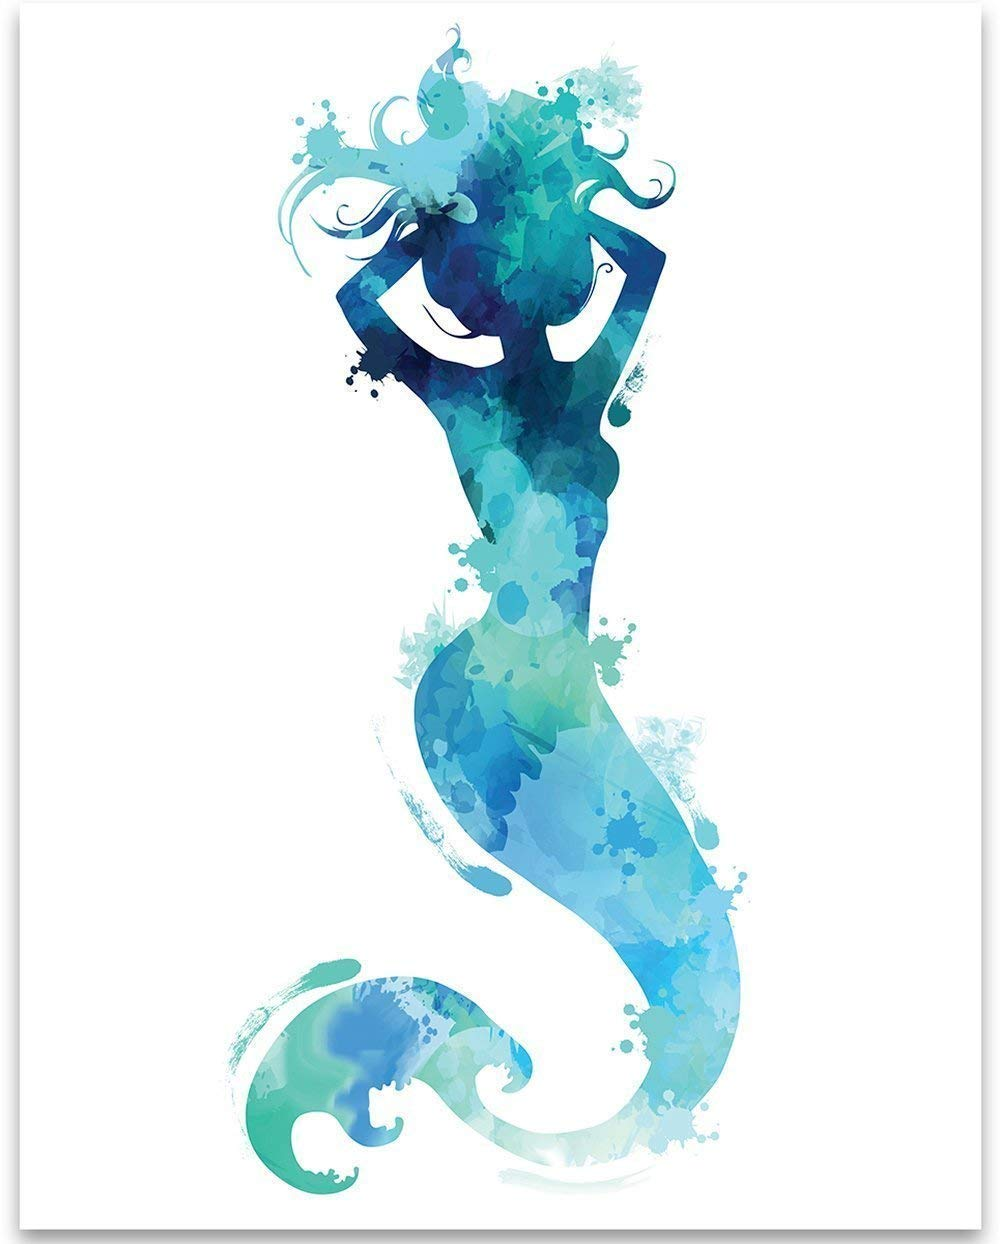 Mermaid Shape Watercolor Wall Art 11x14 Unframed Art Print Perfect Beach Home Lake House Nursery And Children S Room Decor And Baby Shower Gift Under 15 Handmade